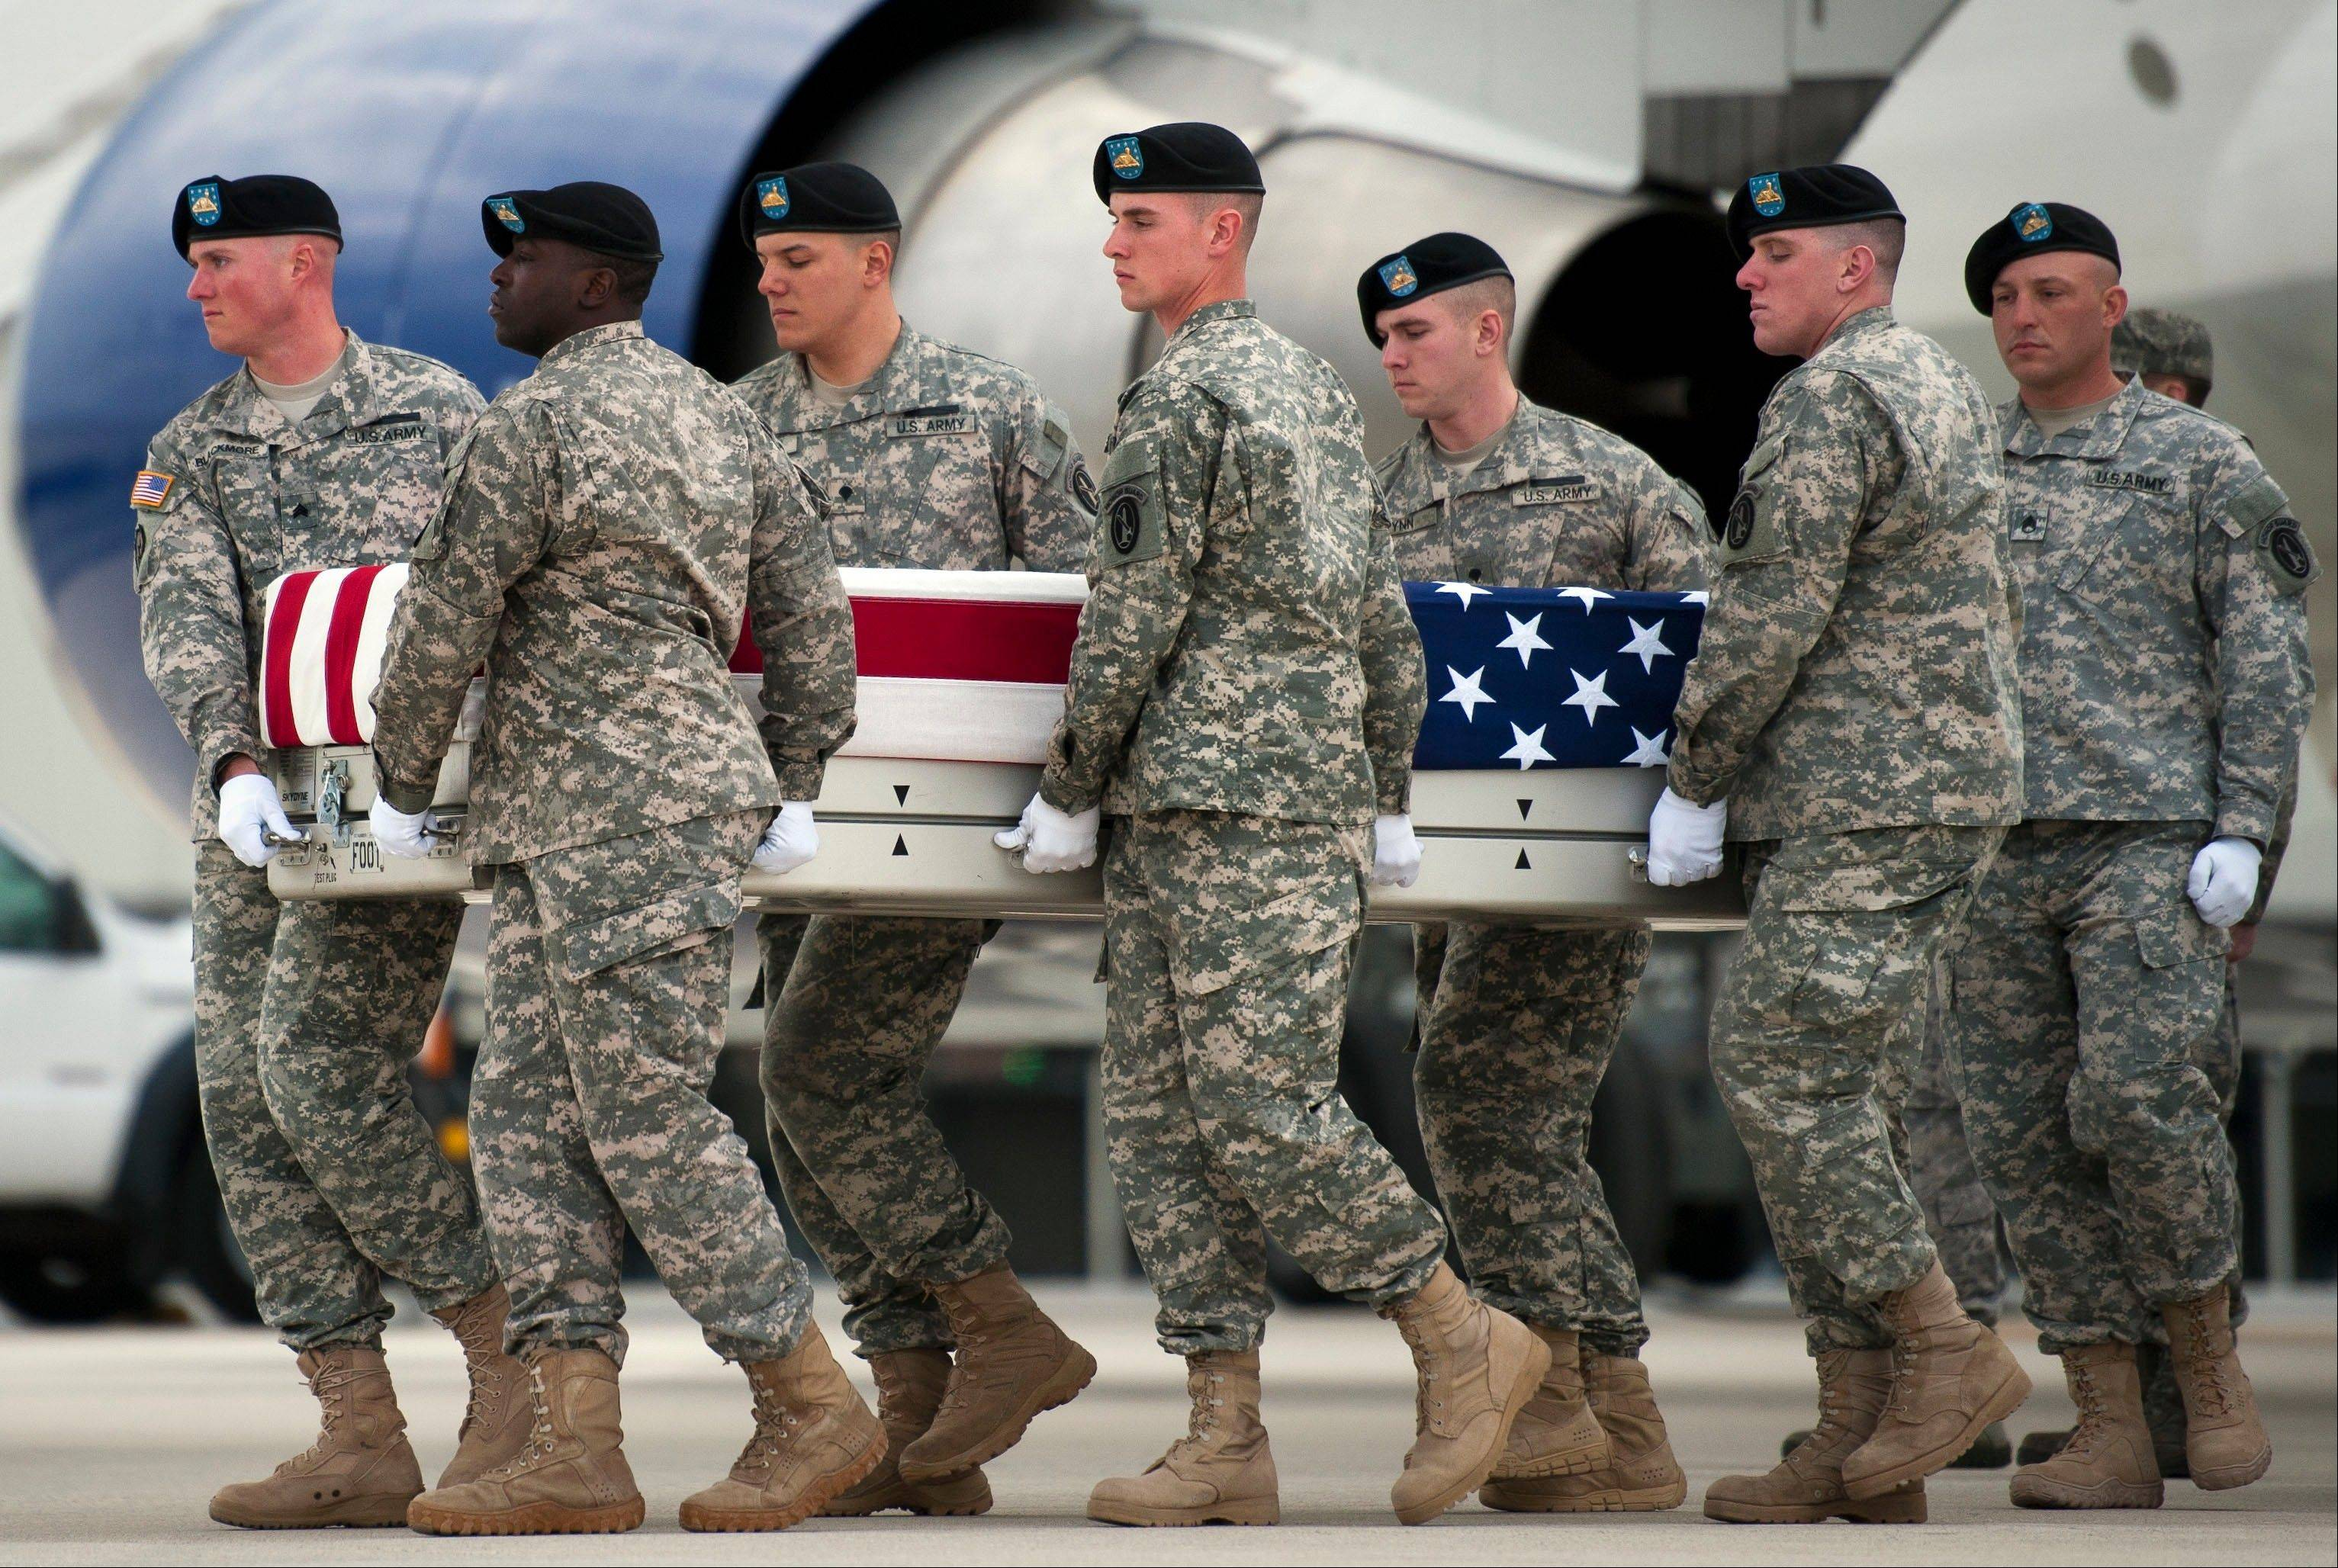 A U.S. Army carry team move a transfer case containing the remains of Army Sgt. Michael Cable, 26, of Philpot, Ky., at Dover Air Force Base, Del. An Afghan teenager killed Cable in eastern Afghanistan by stabbing him in the neck while he played with a group of local children, officials said Monday.